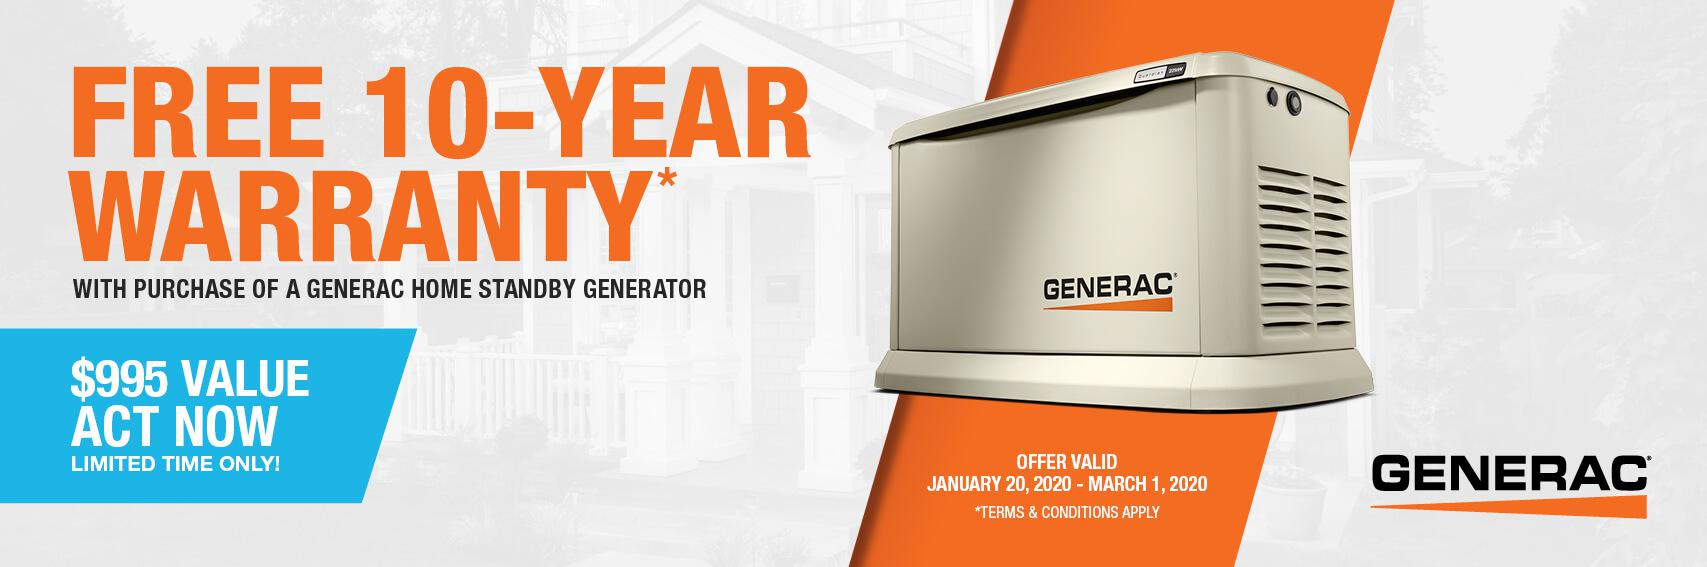 Homestandby Generator Deal | Warranty Offer | Generac Dealer | Prairieville, LA